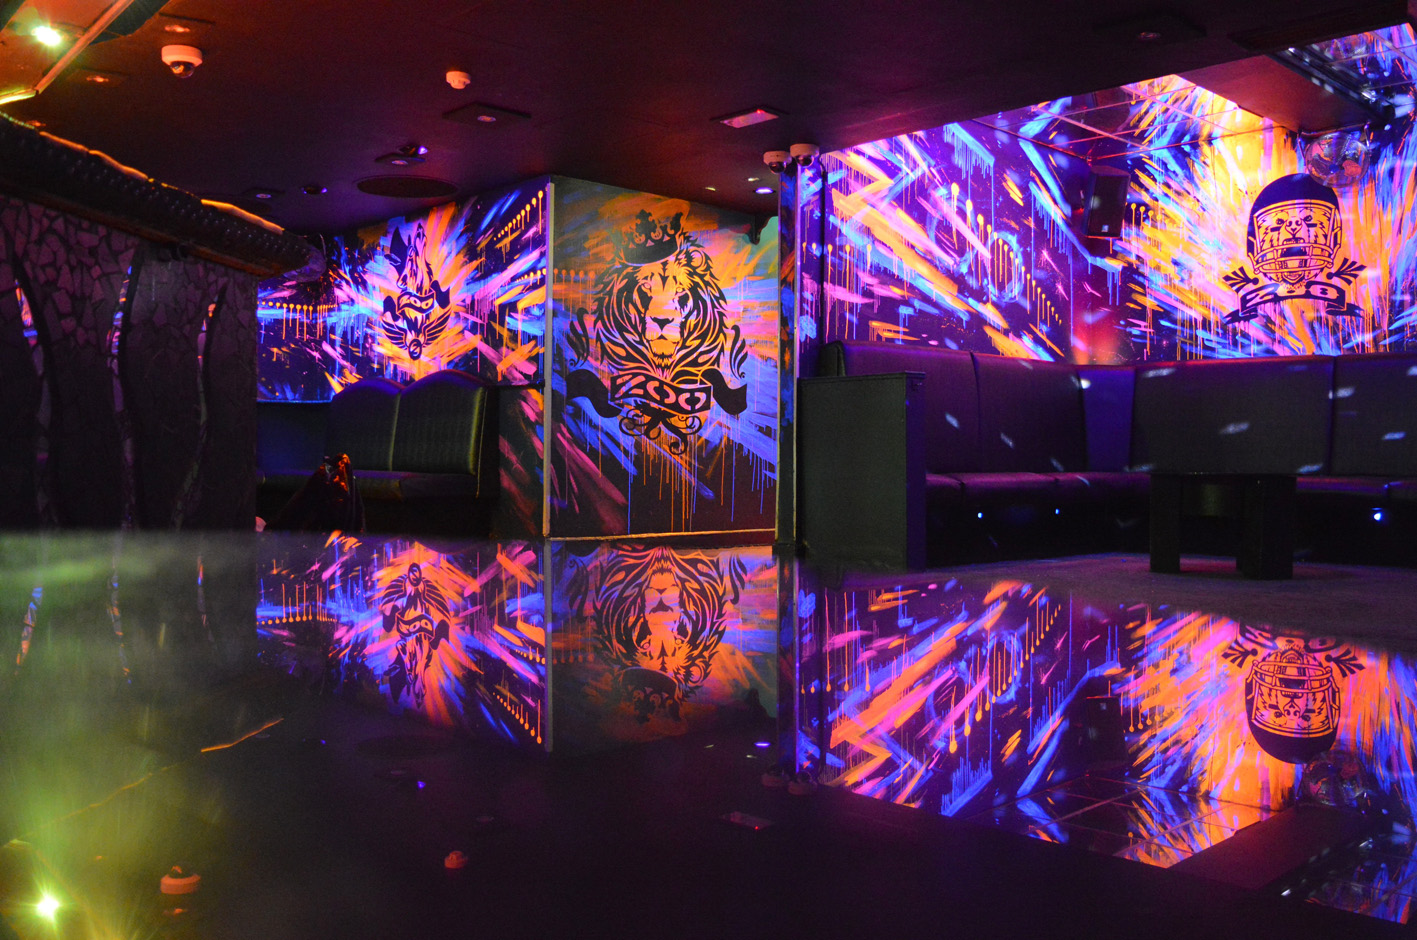 Zoo_UV-Mural-nightclub-10